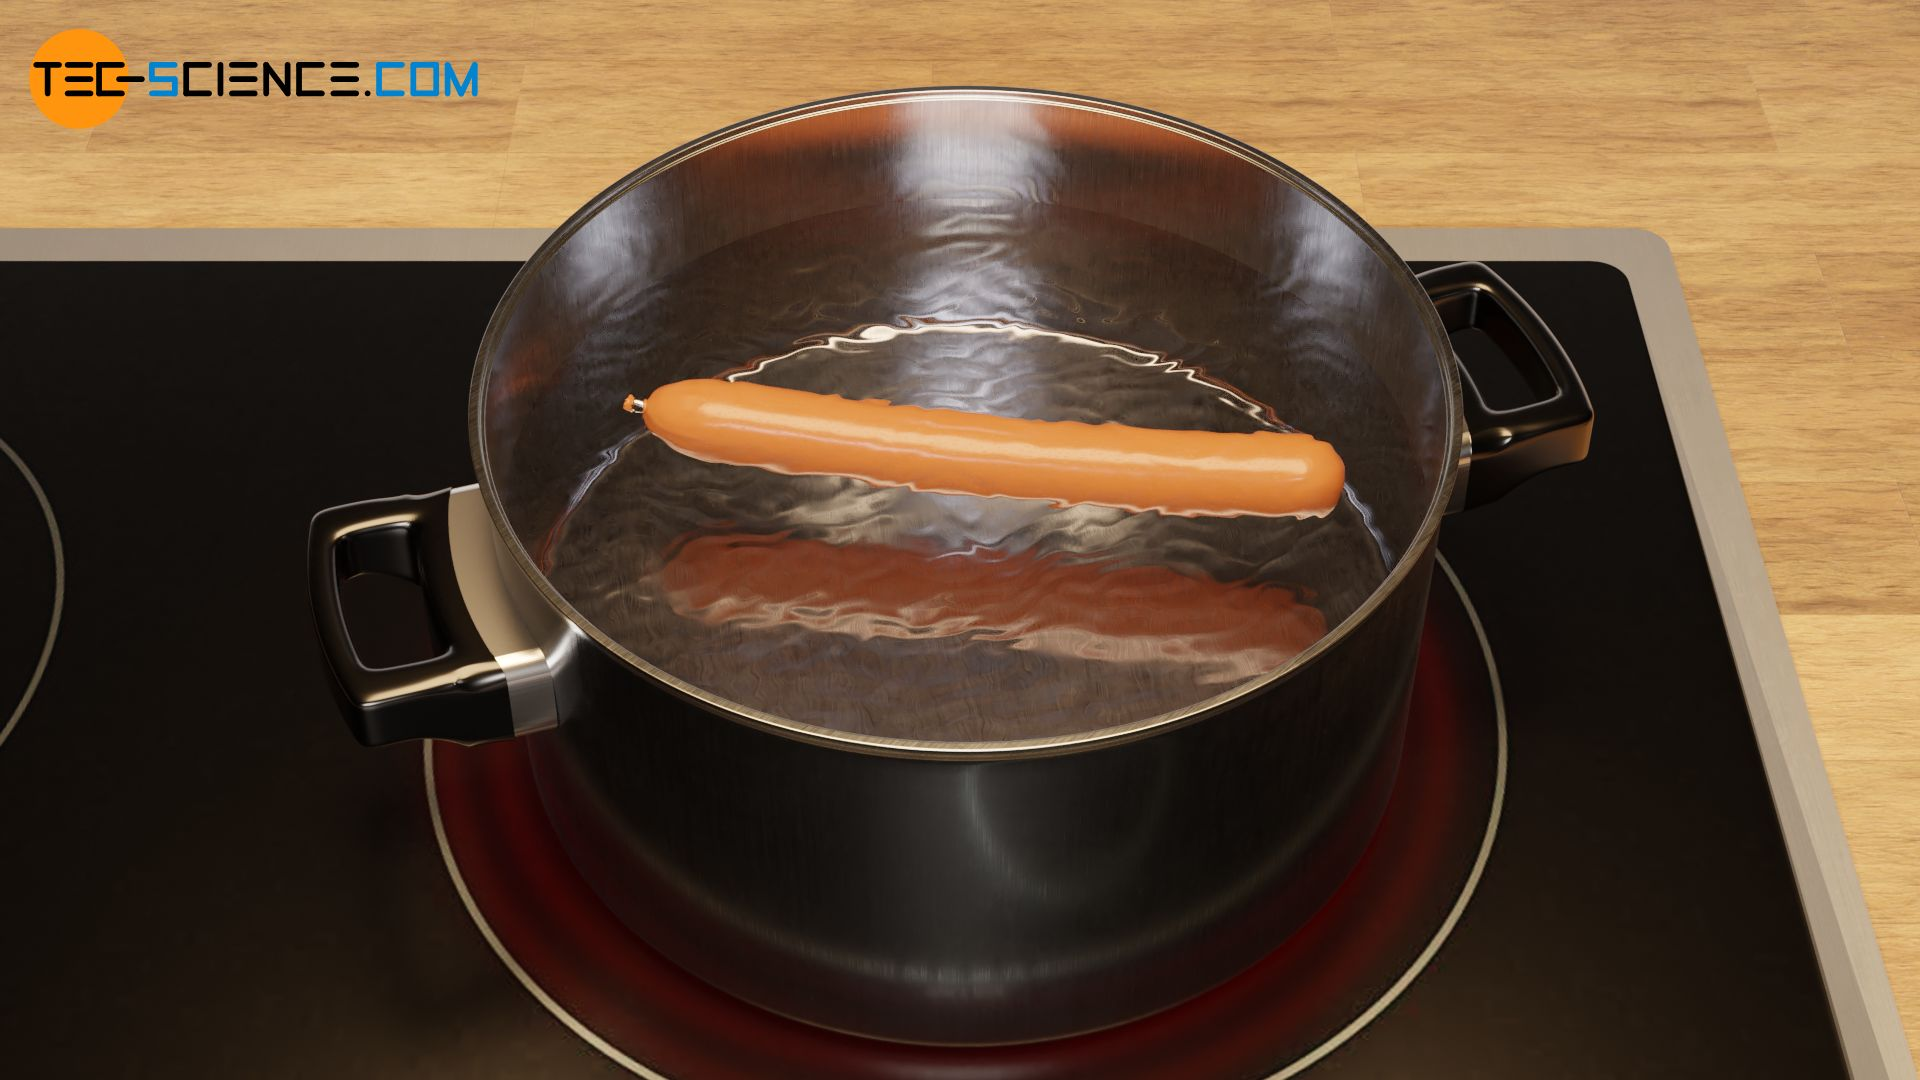 Heating a pot of water with a sausage in it